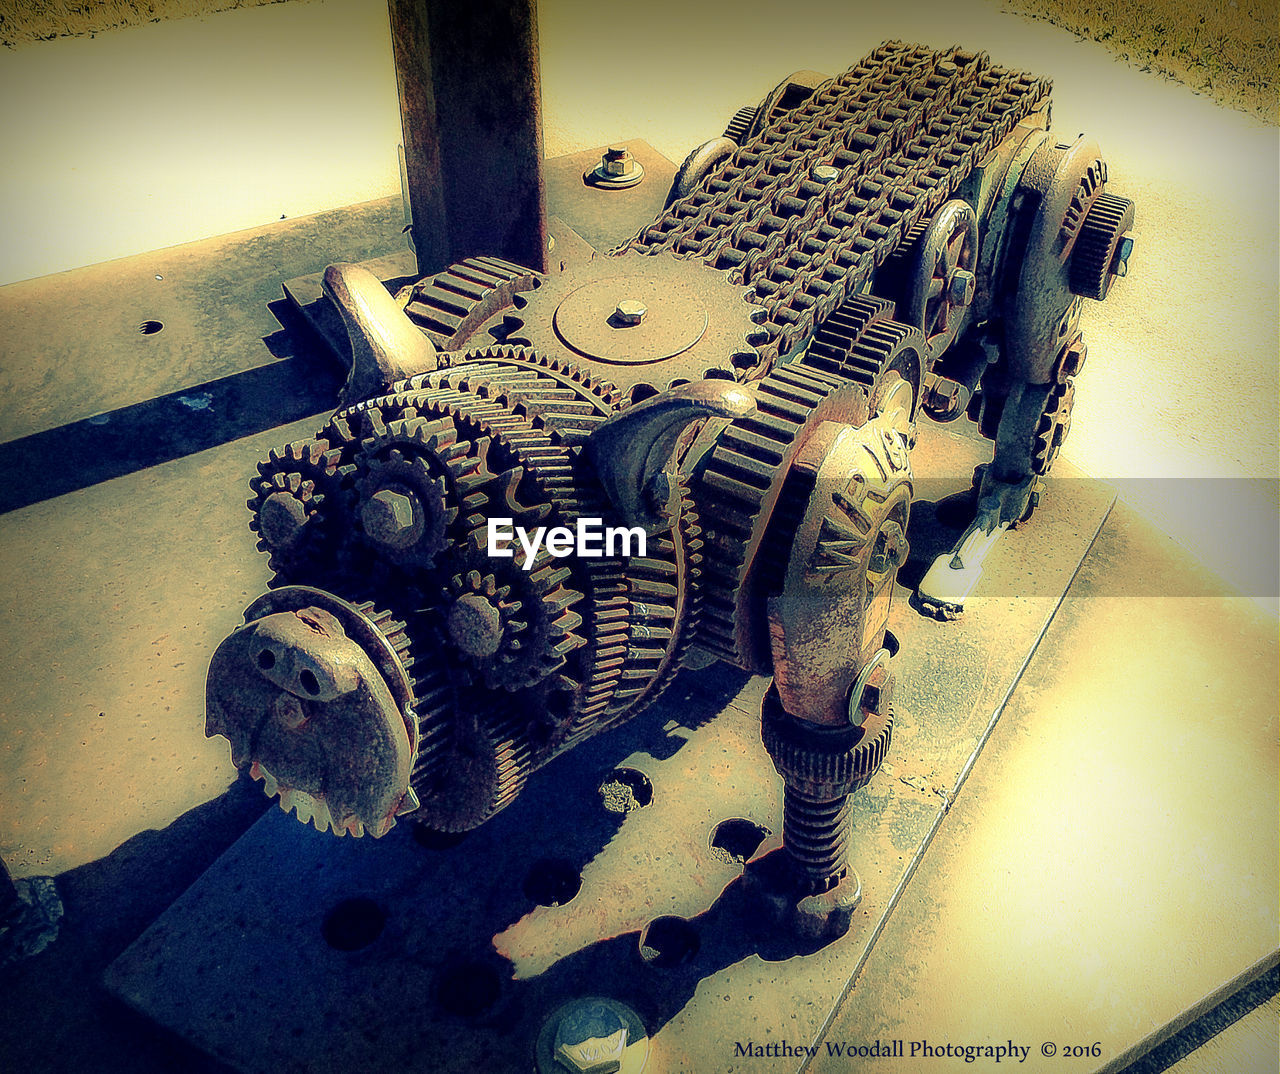 high angle view, machine part, no people, indoors, machinery, workshop, fish-eye lens, manufacturing equipment, technology, gear, day, close-up